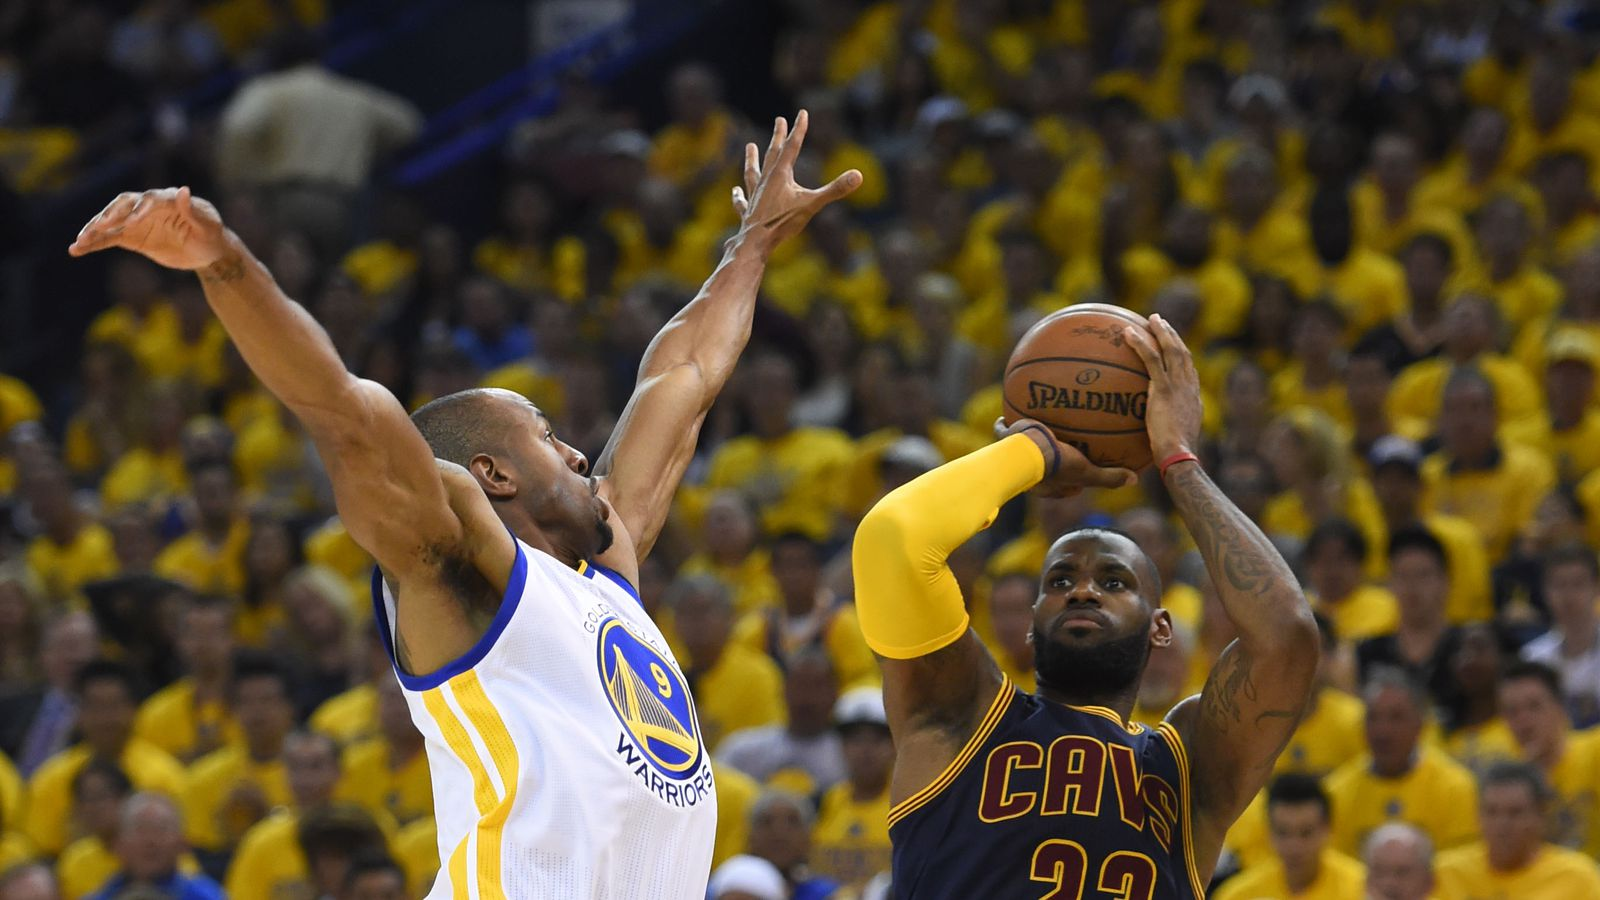 NBA Finals, Cavaliers vs. Warriors: Golden State is one win away from a title - SBNation.com